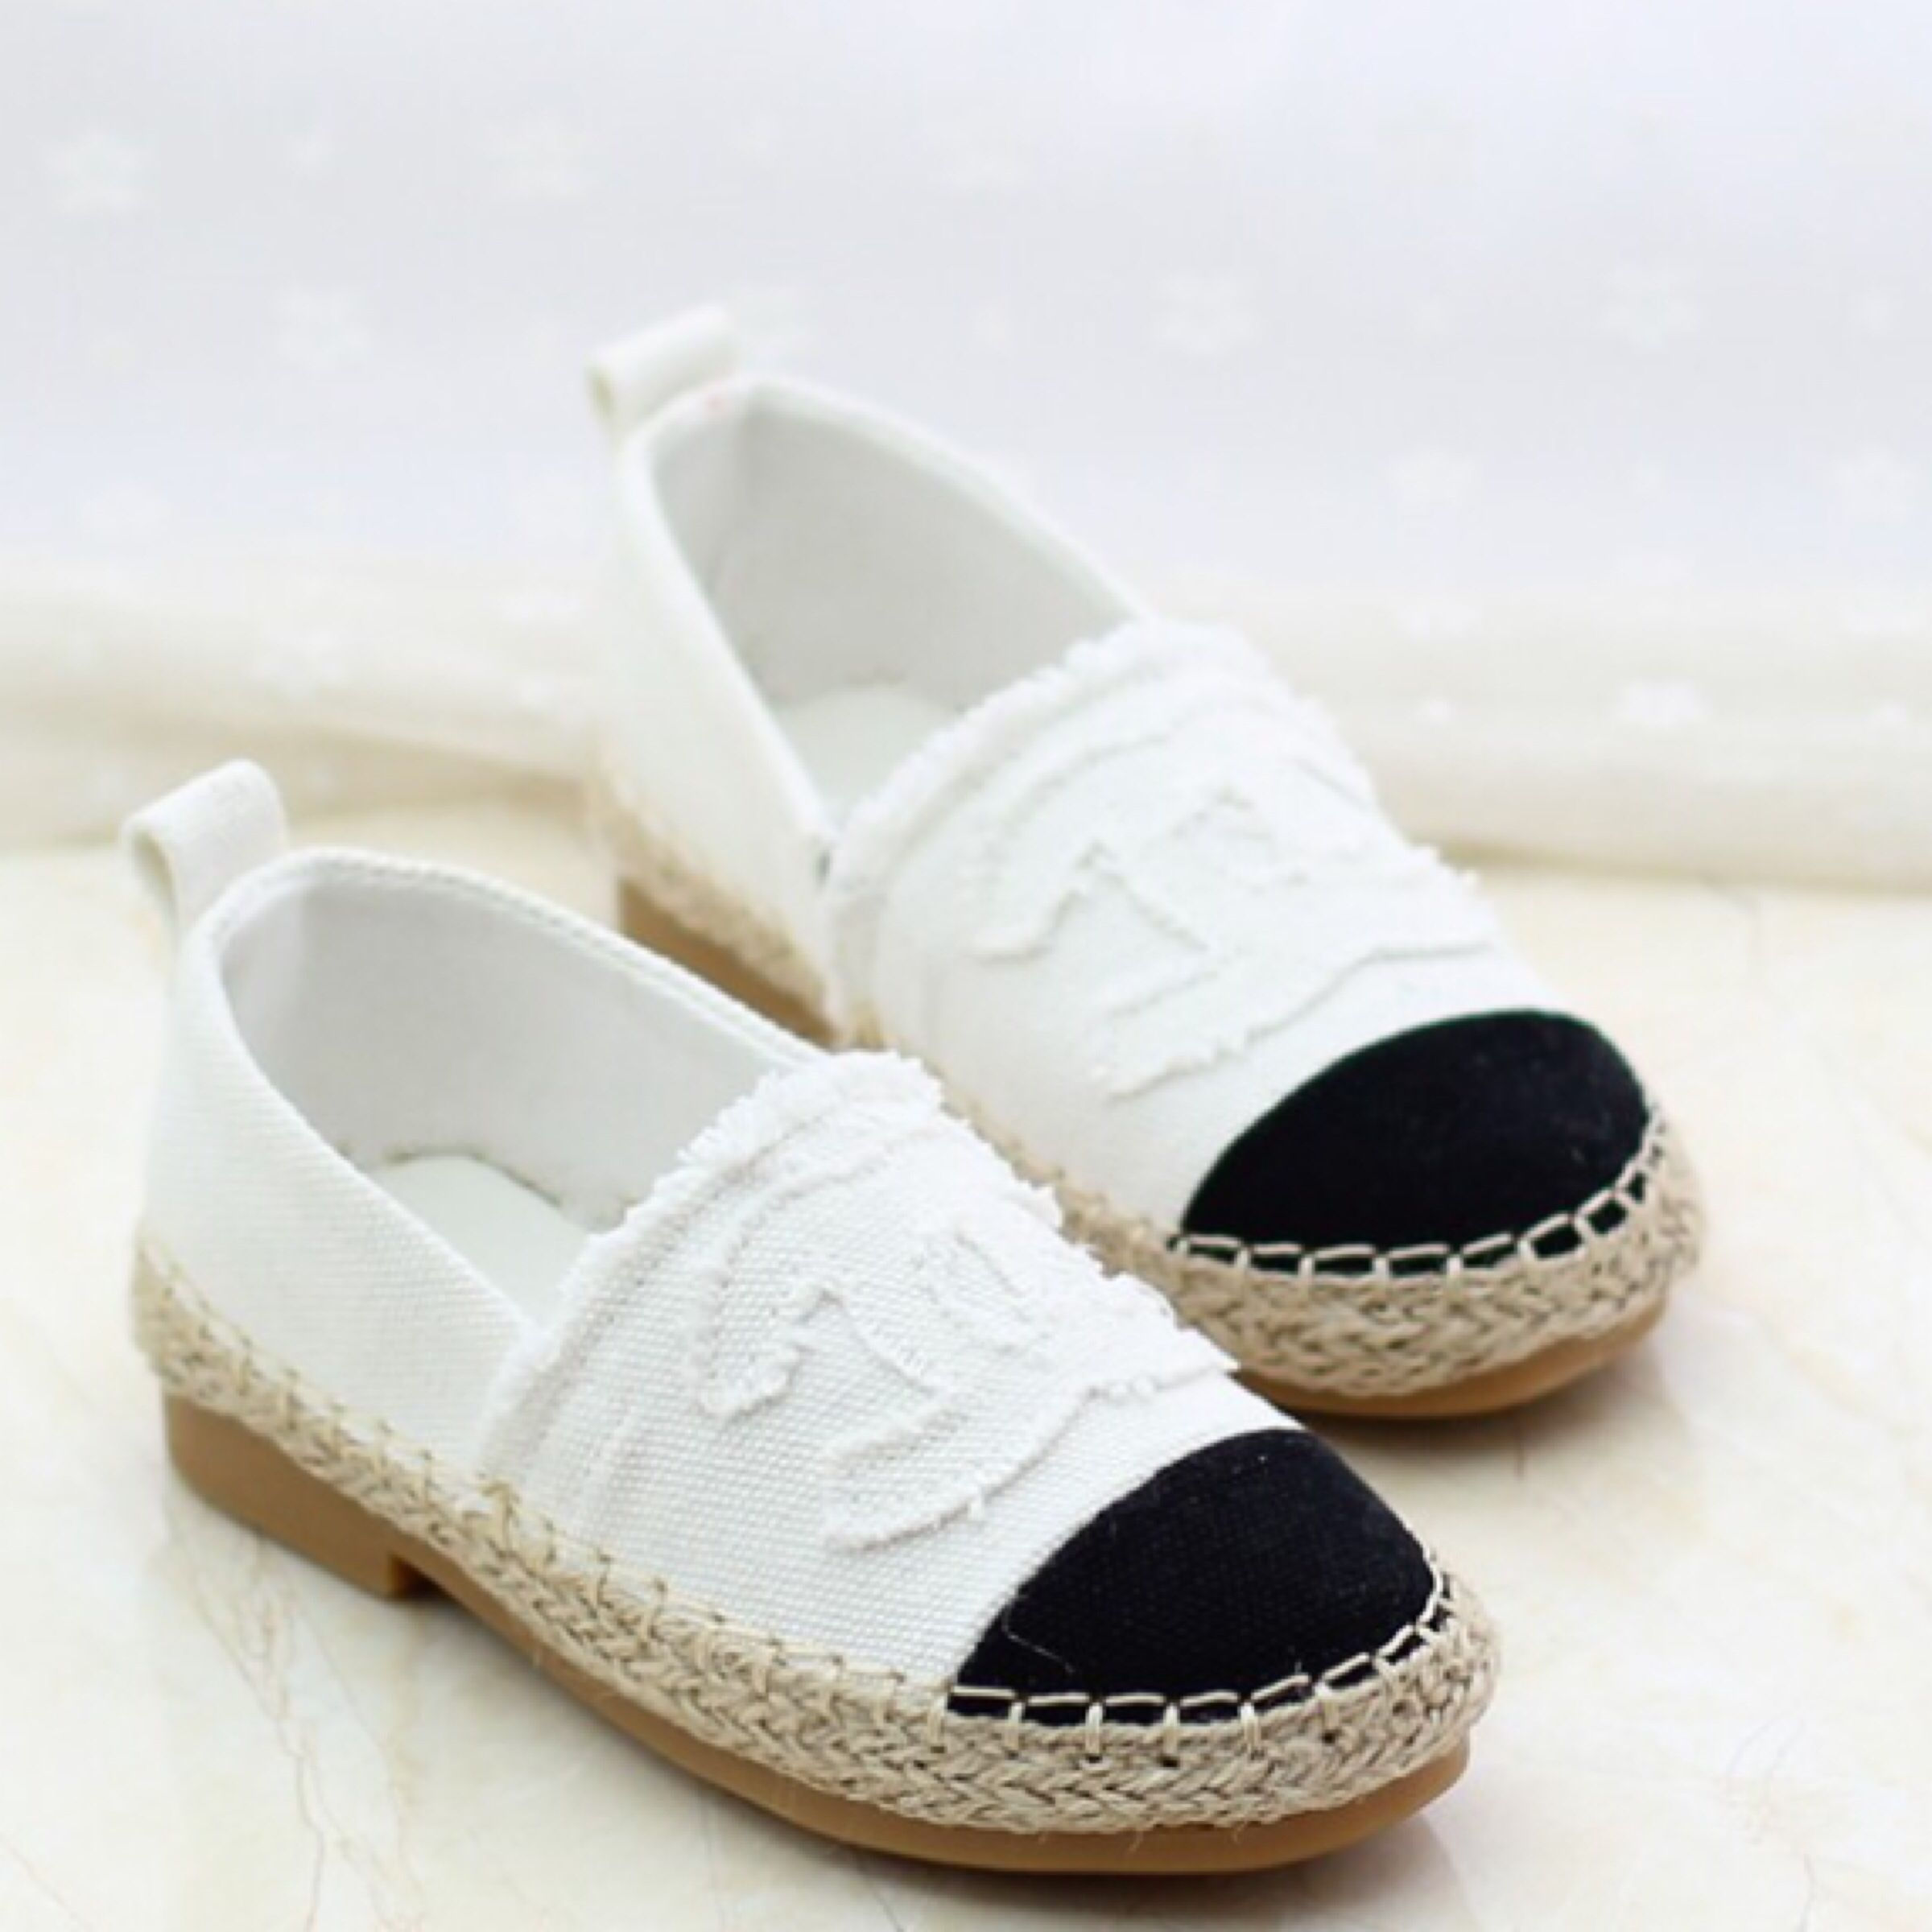 6a9cebedda36 Of course Nailea HAS to have these  inspired Chanel espadrilles. So  freaking cute dude.  toddler  shoes